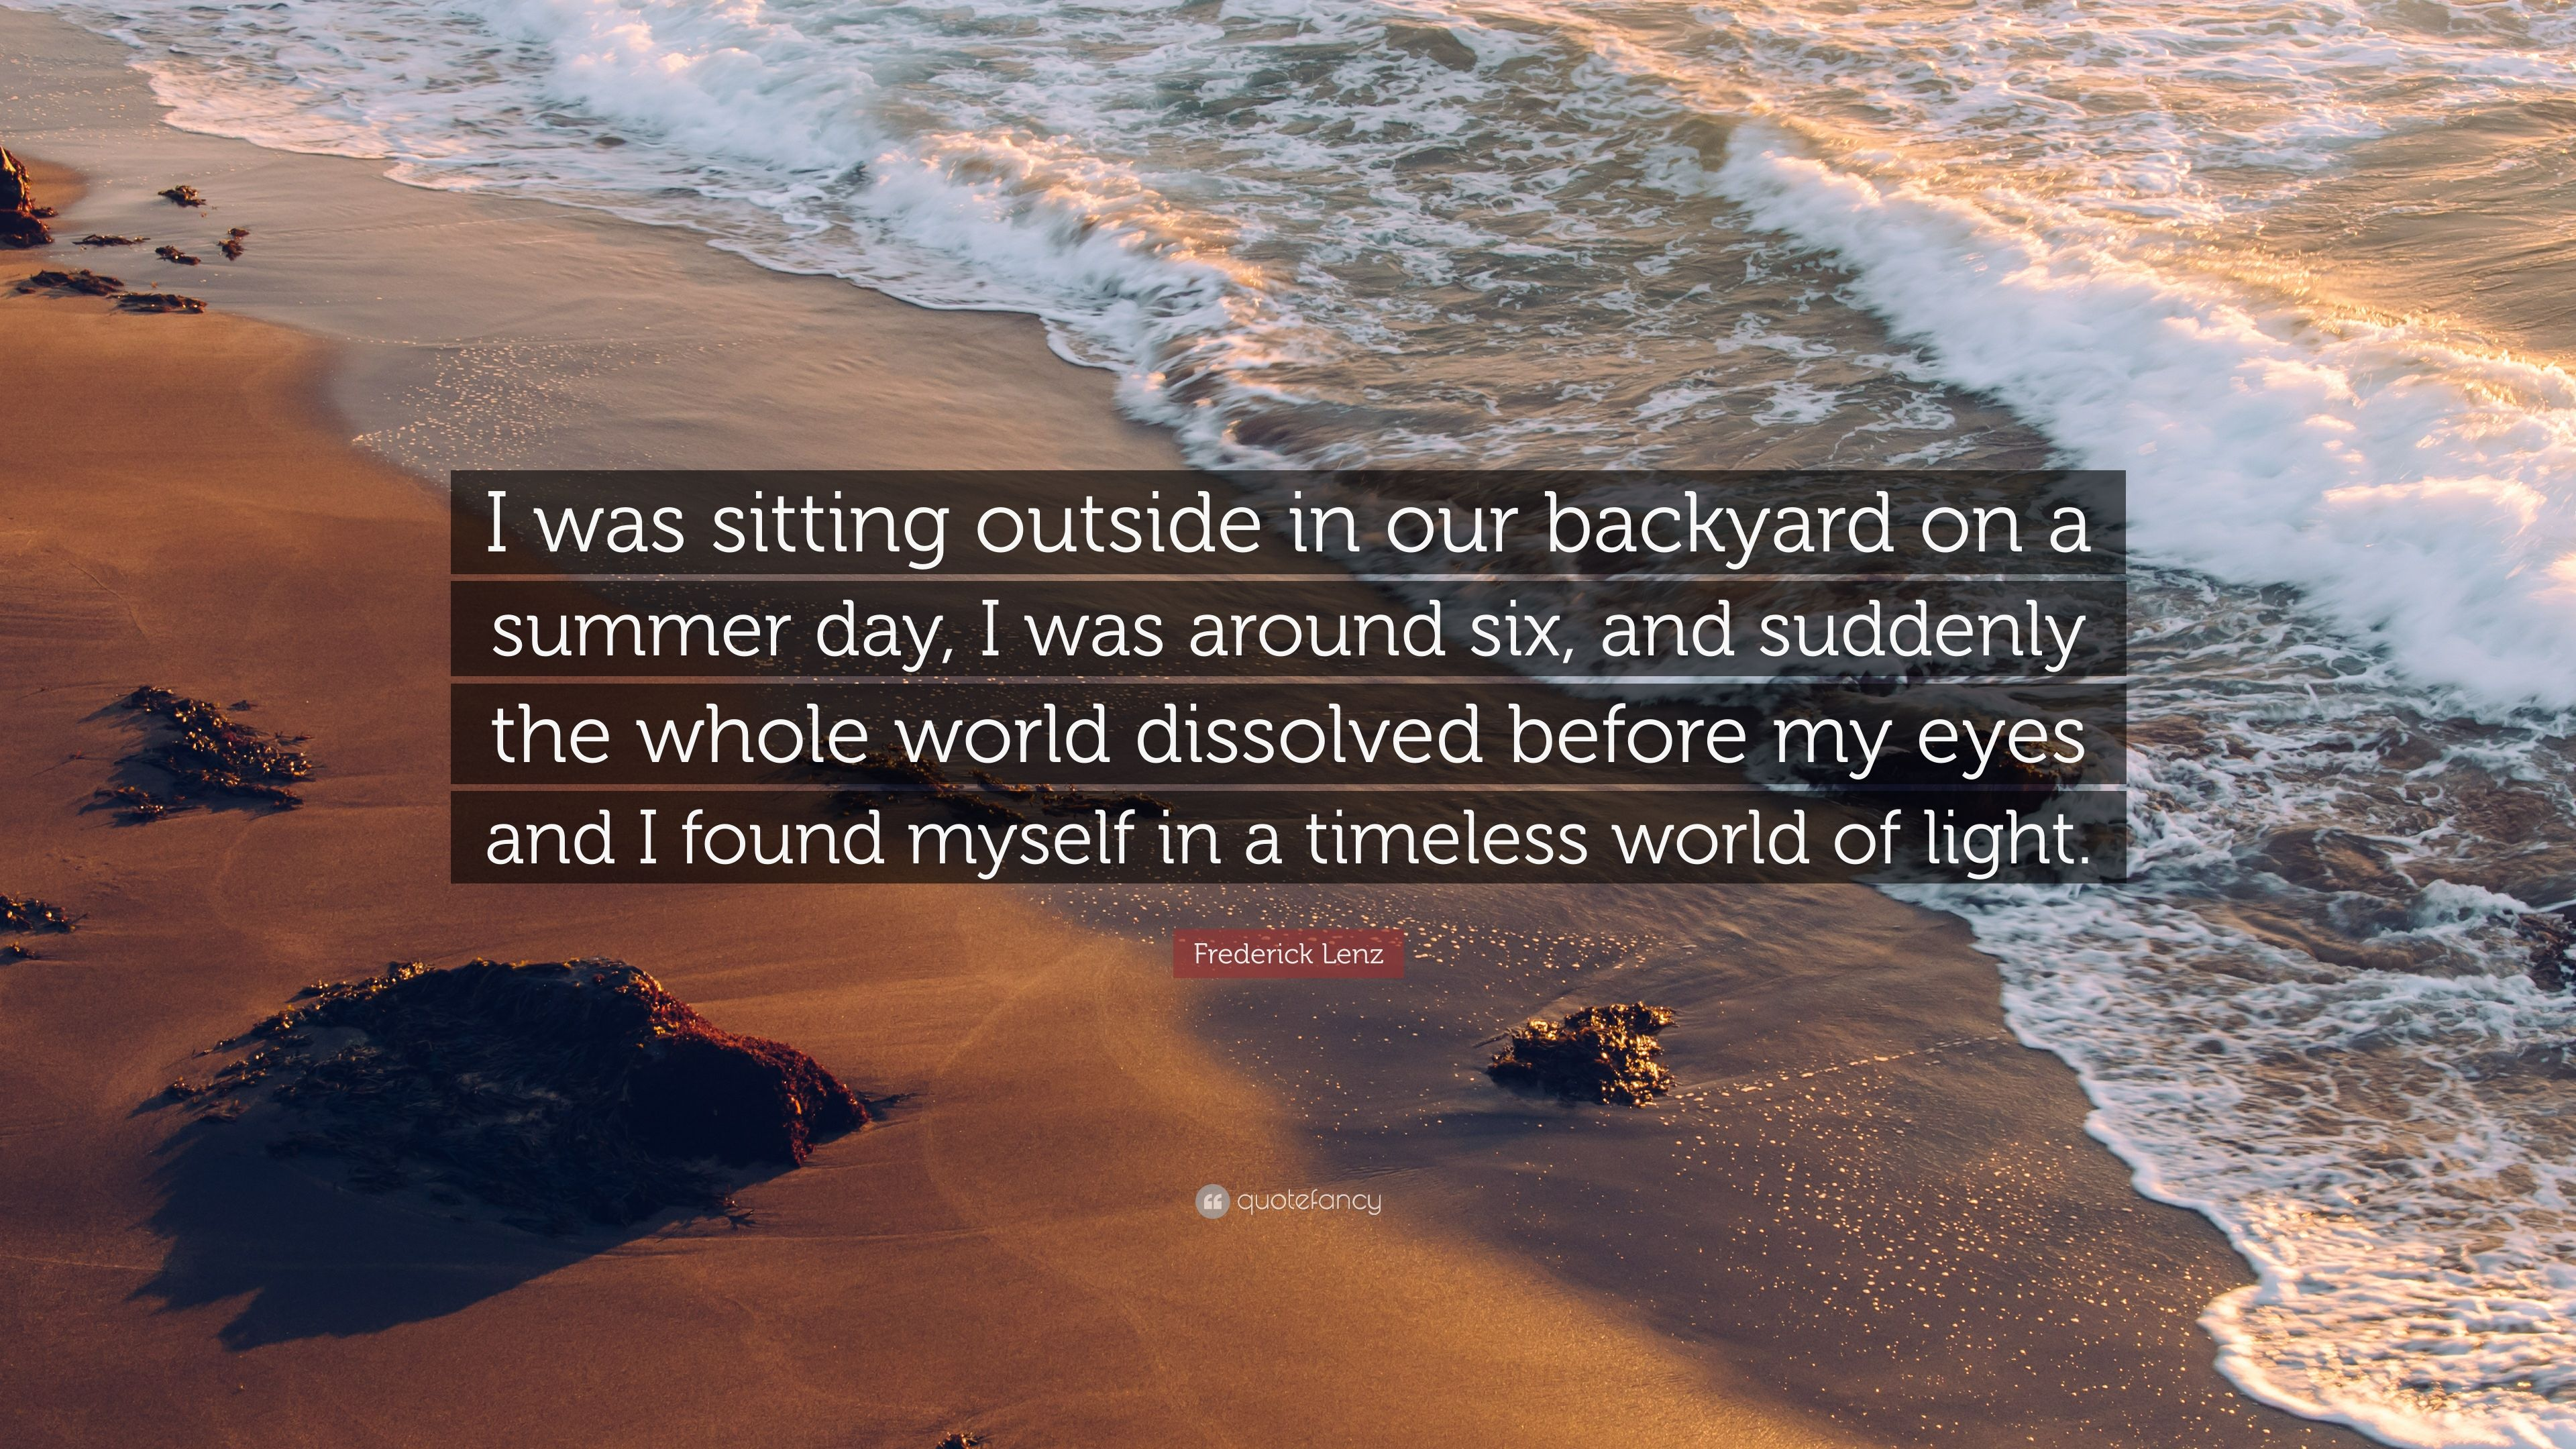 frederick lenz quote u201ci was sitting outside in our backyard on a